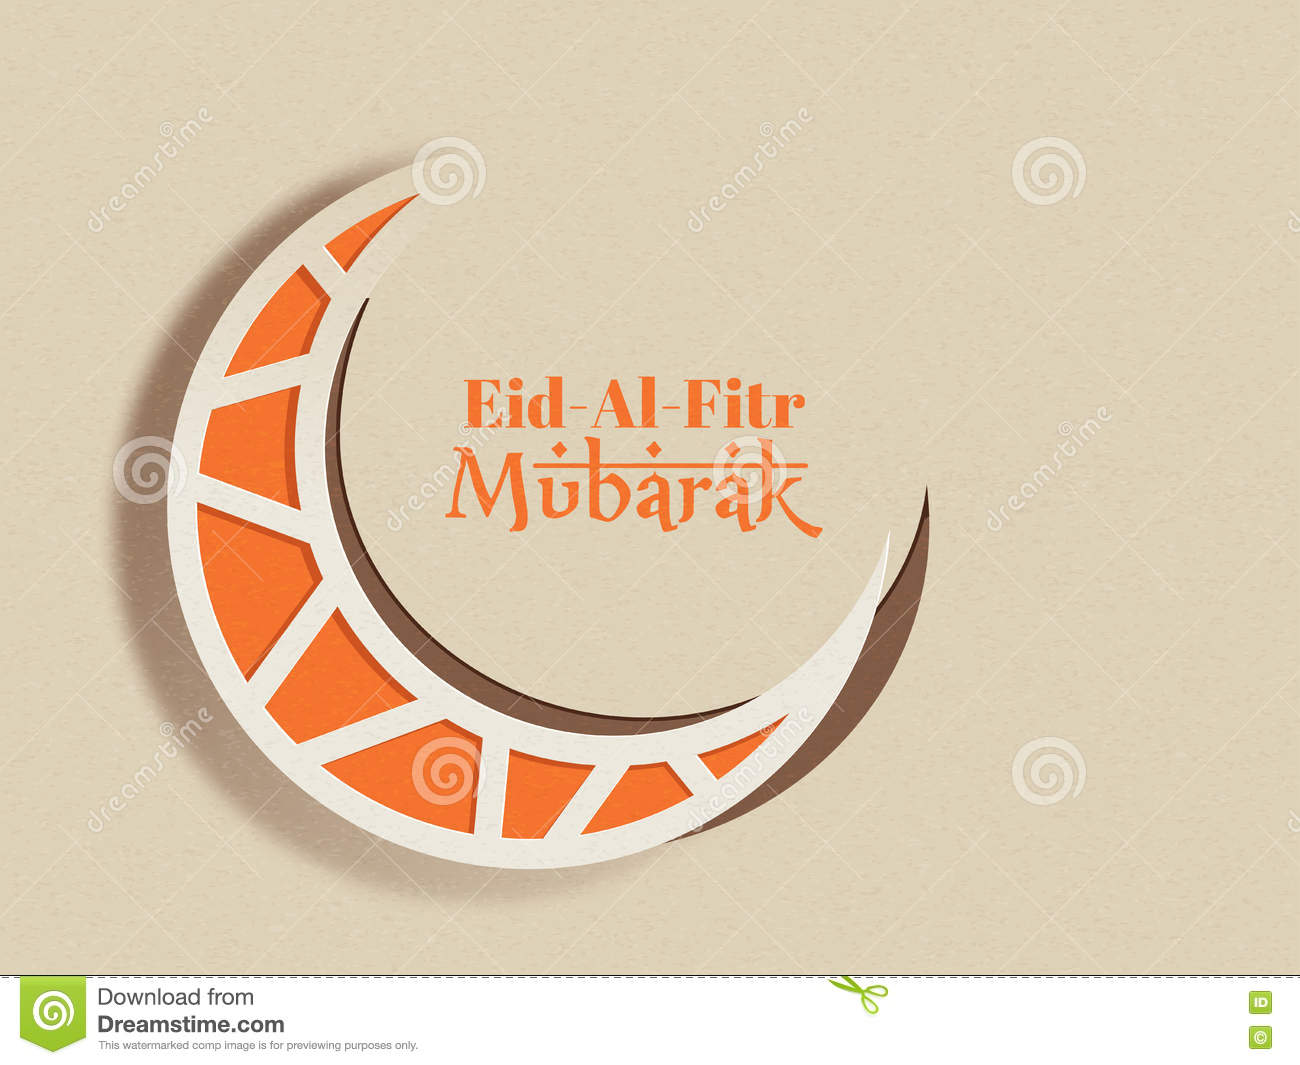 Paper moon for eid al fitr mubarak stock illustration paper moon for eid al fitr mubarak kristyandbryce Image collections